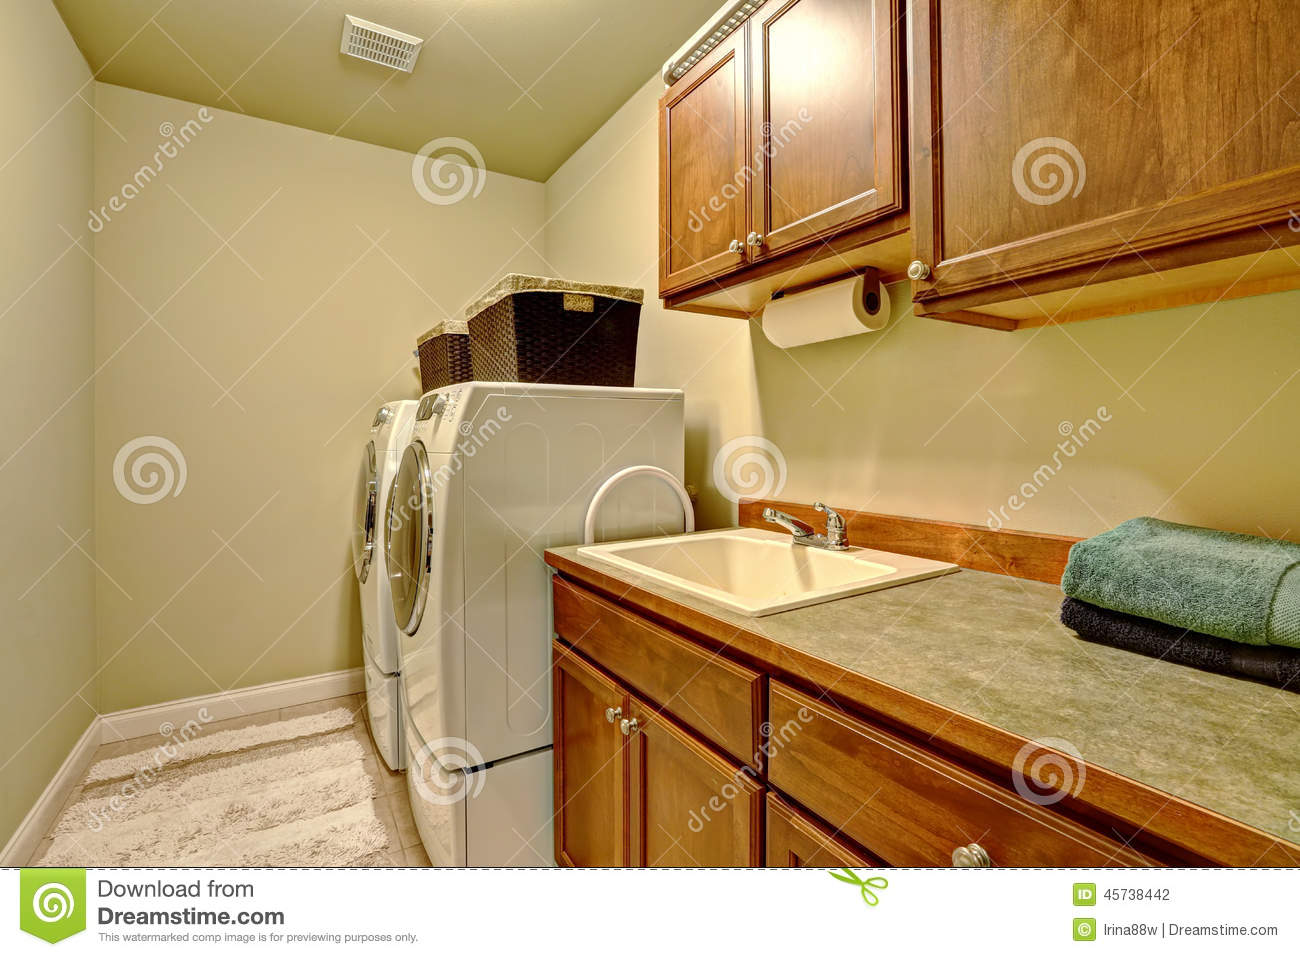 Standard Laundry Room Interior In American House Stock